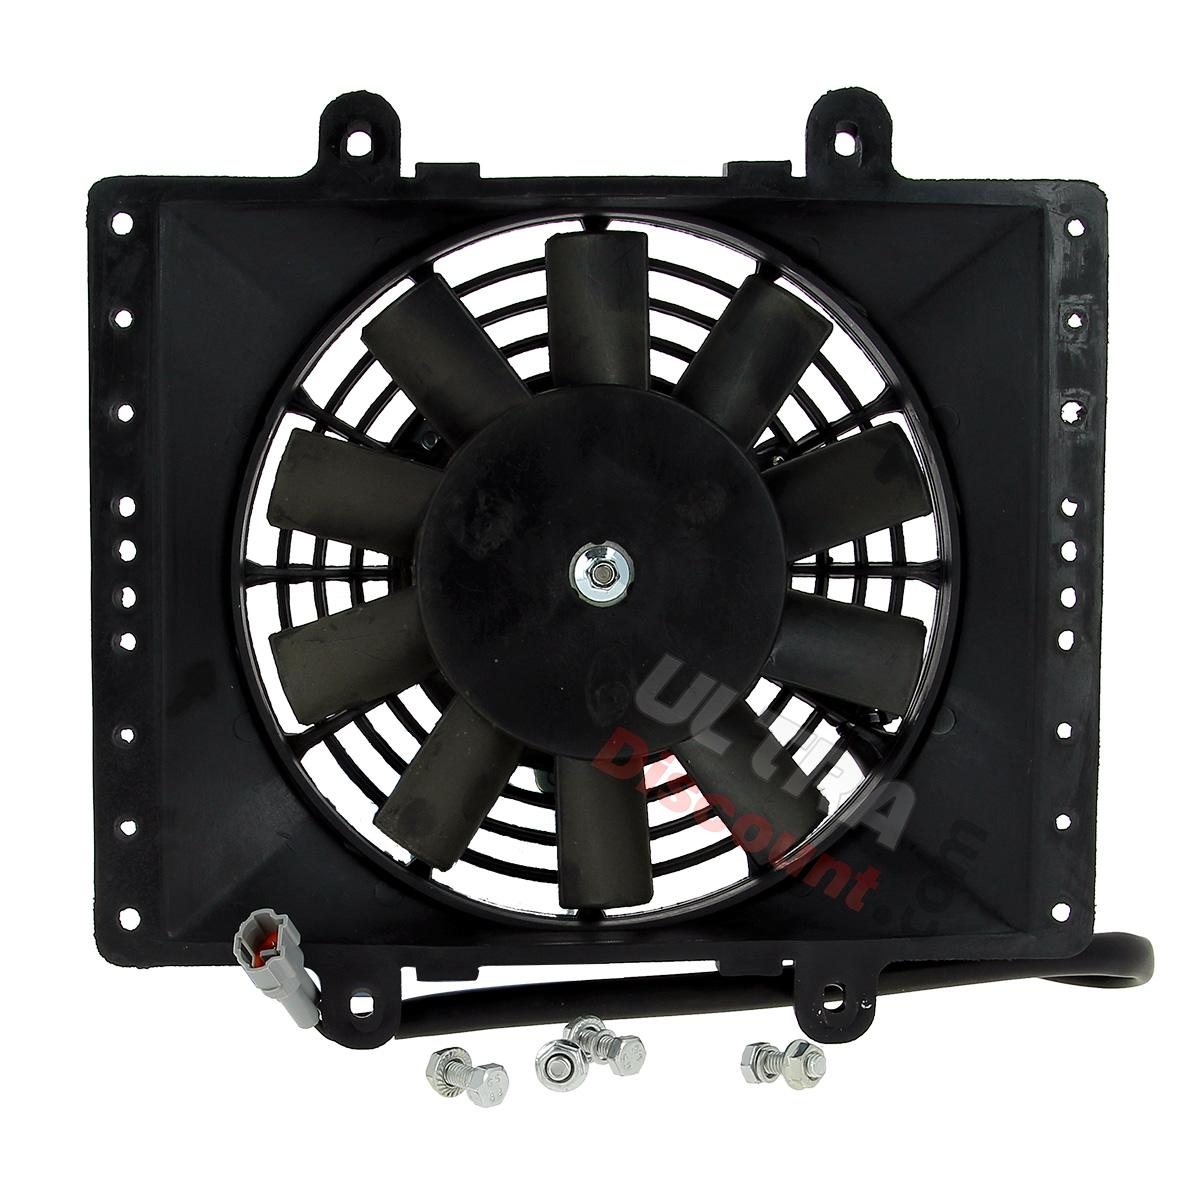 Magasin Ventilateur 39 90 Ventilateur Pour Quads Shineray 250st 5 Dirt Bike